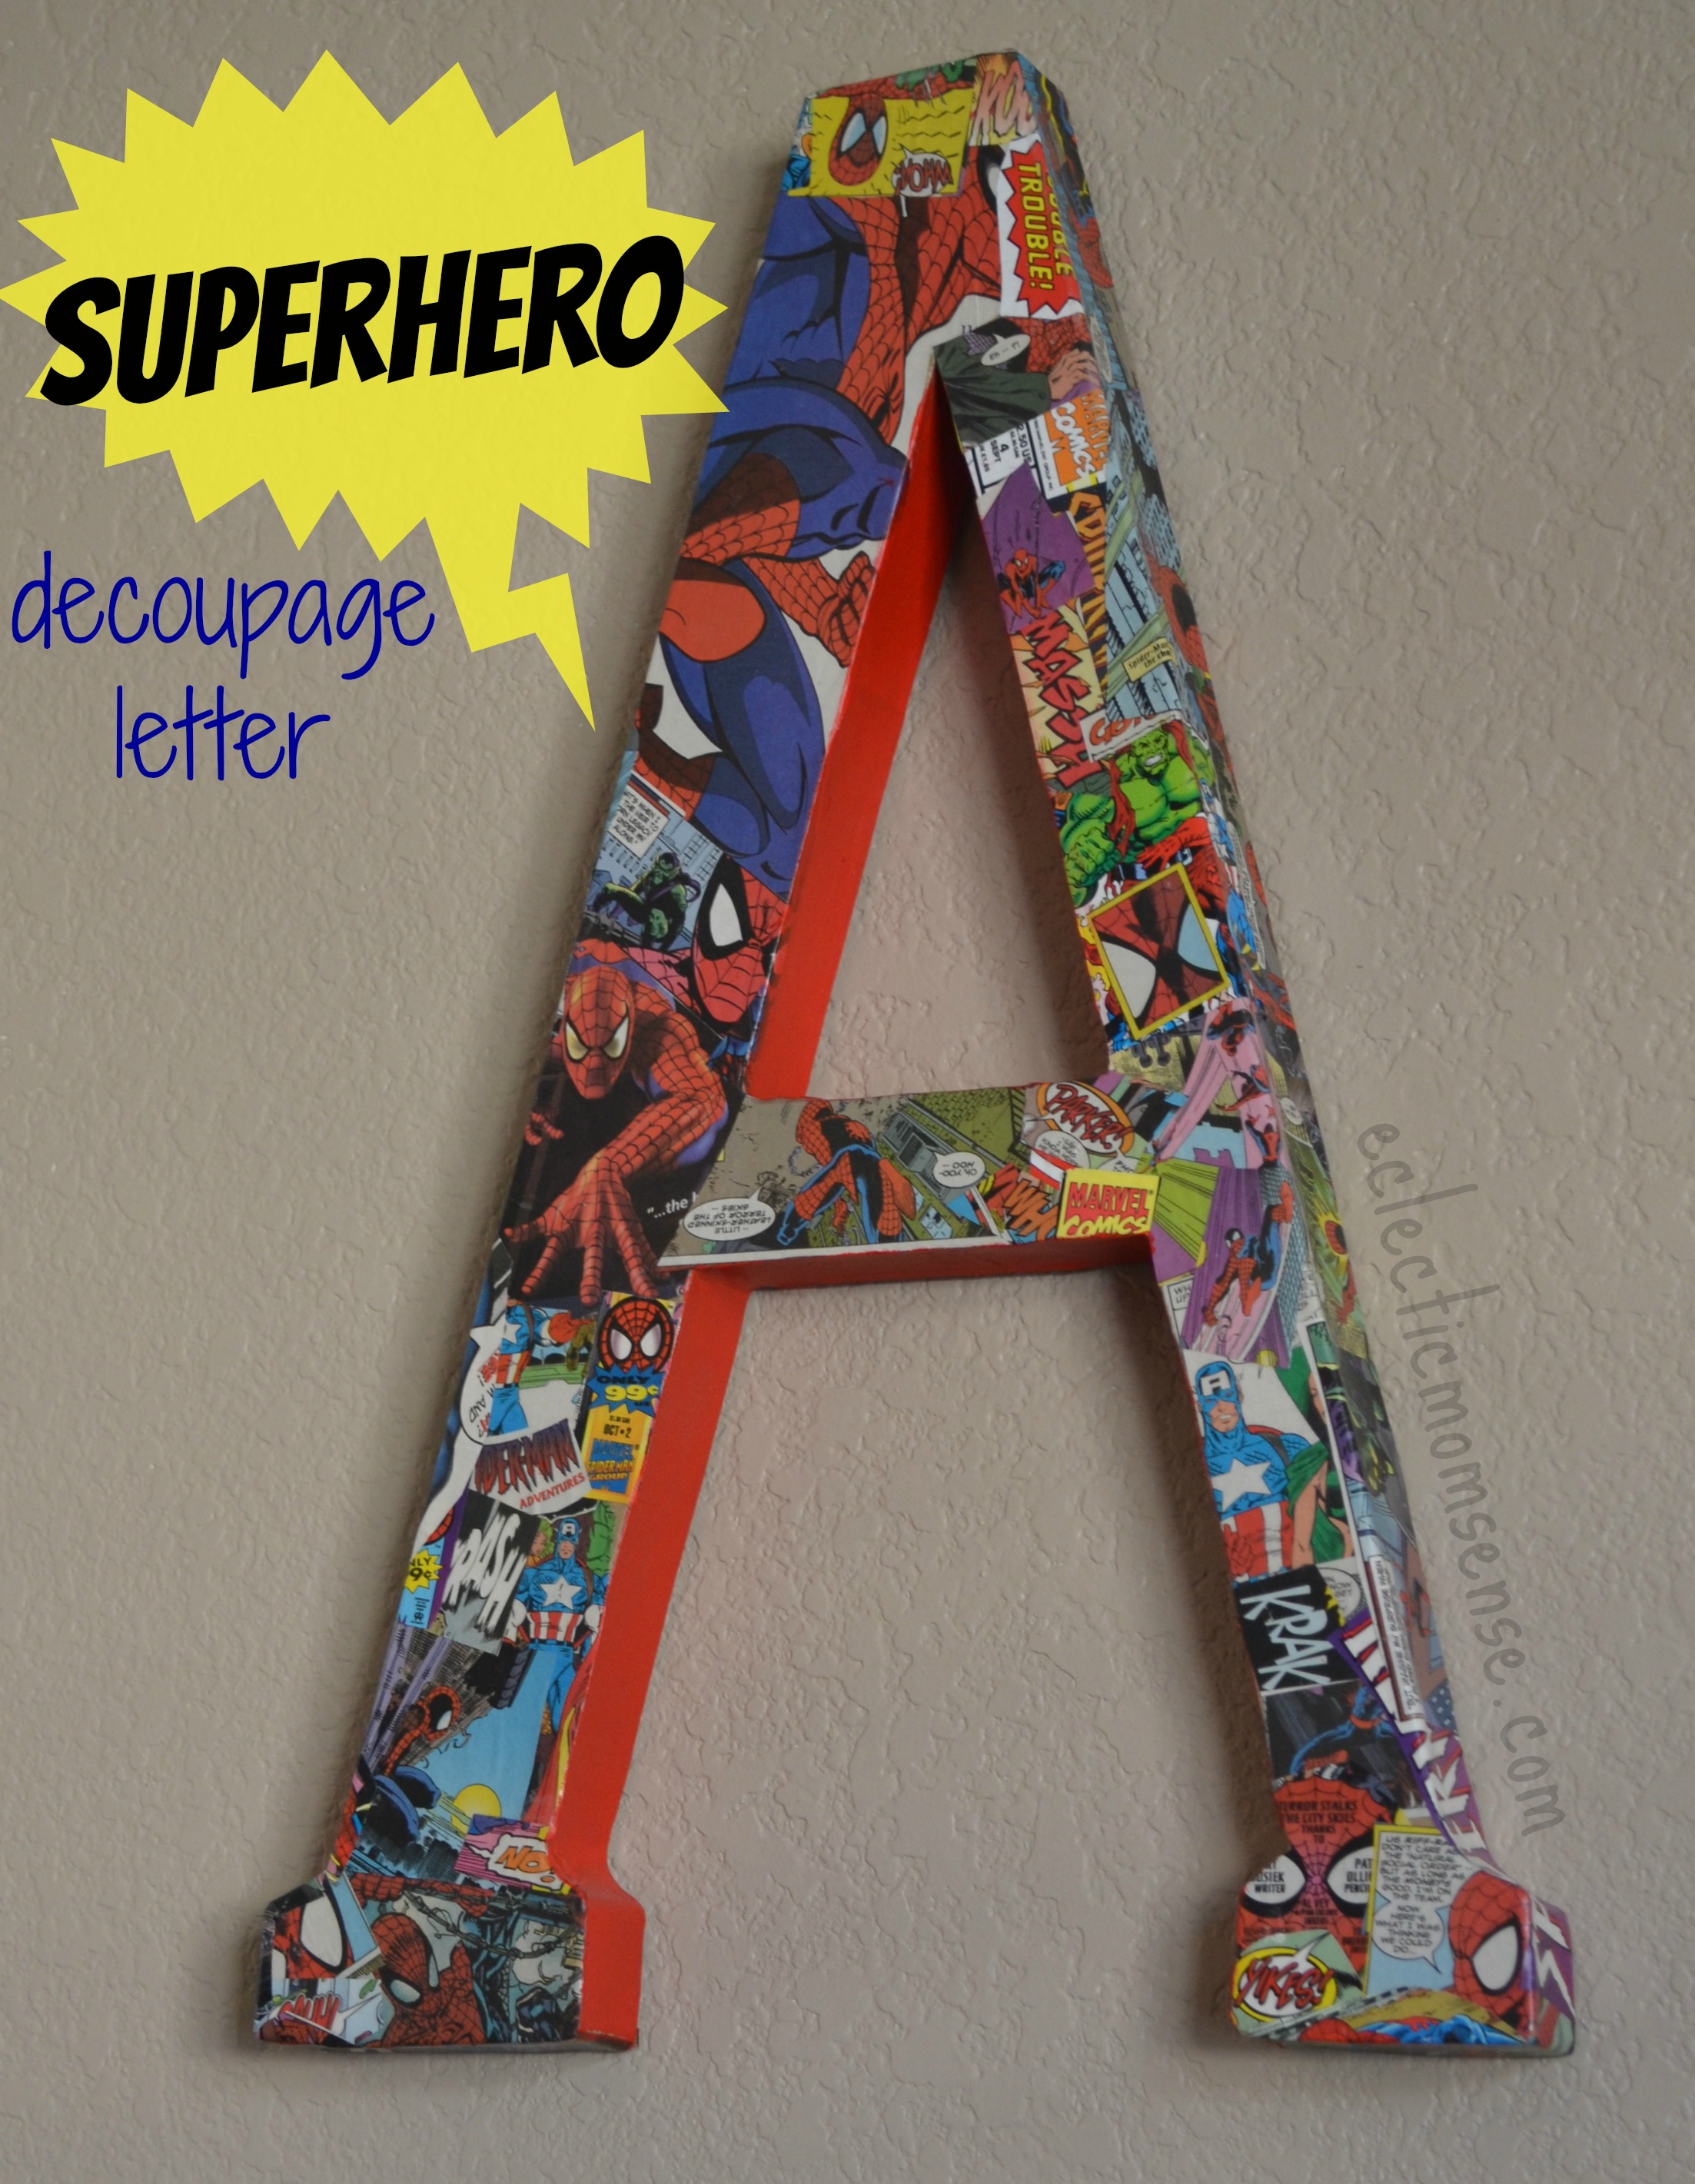 comic book decoupage letter